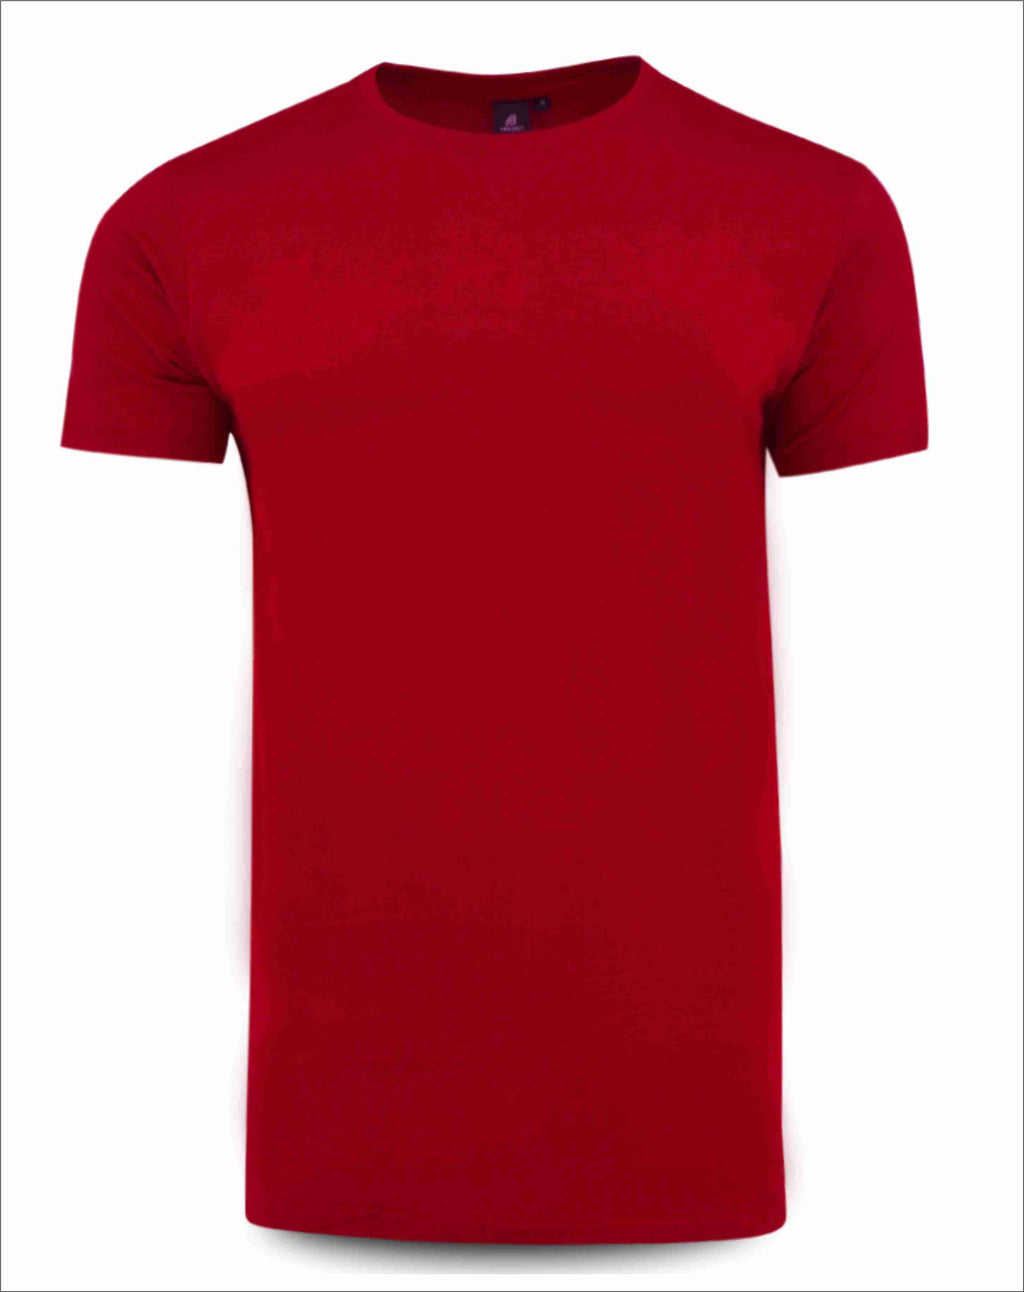 EVENI T-SHIRT TANGO RED